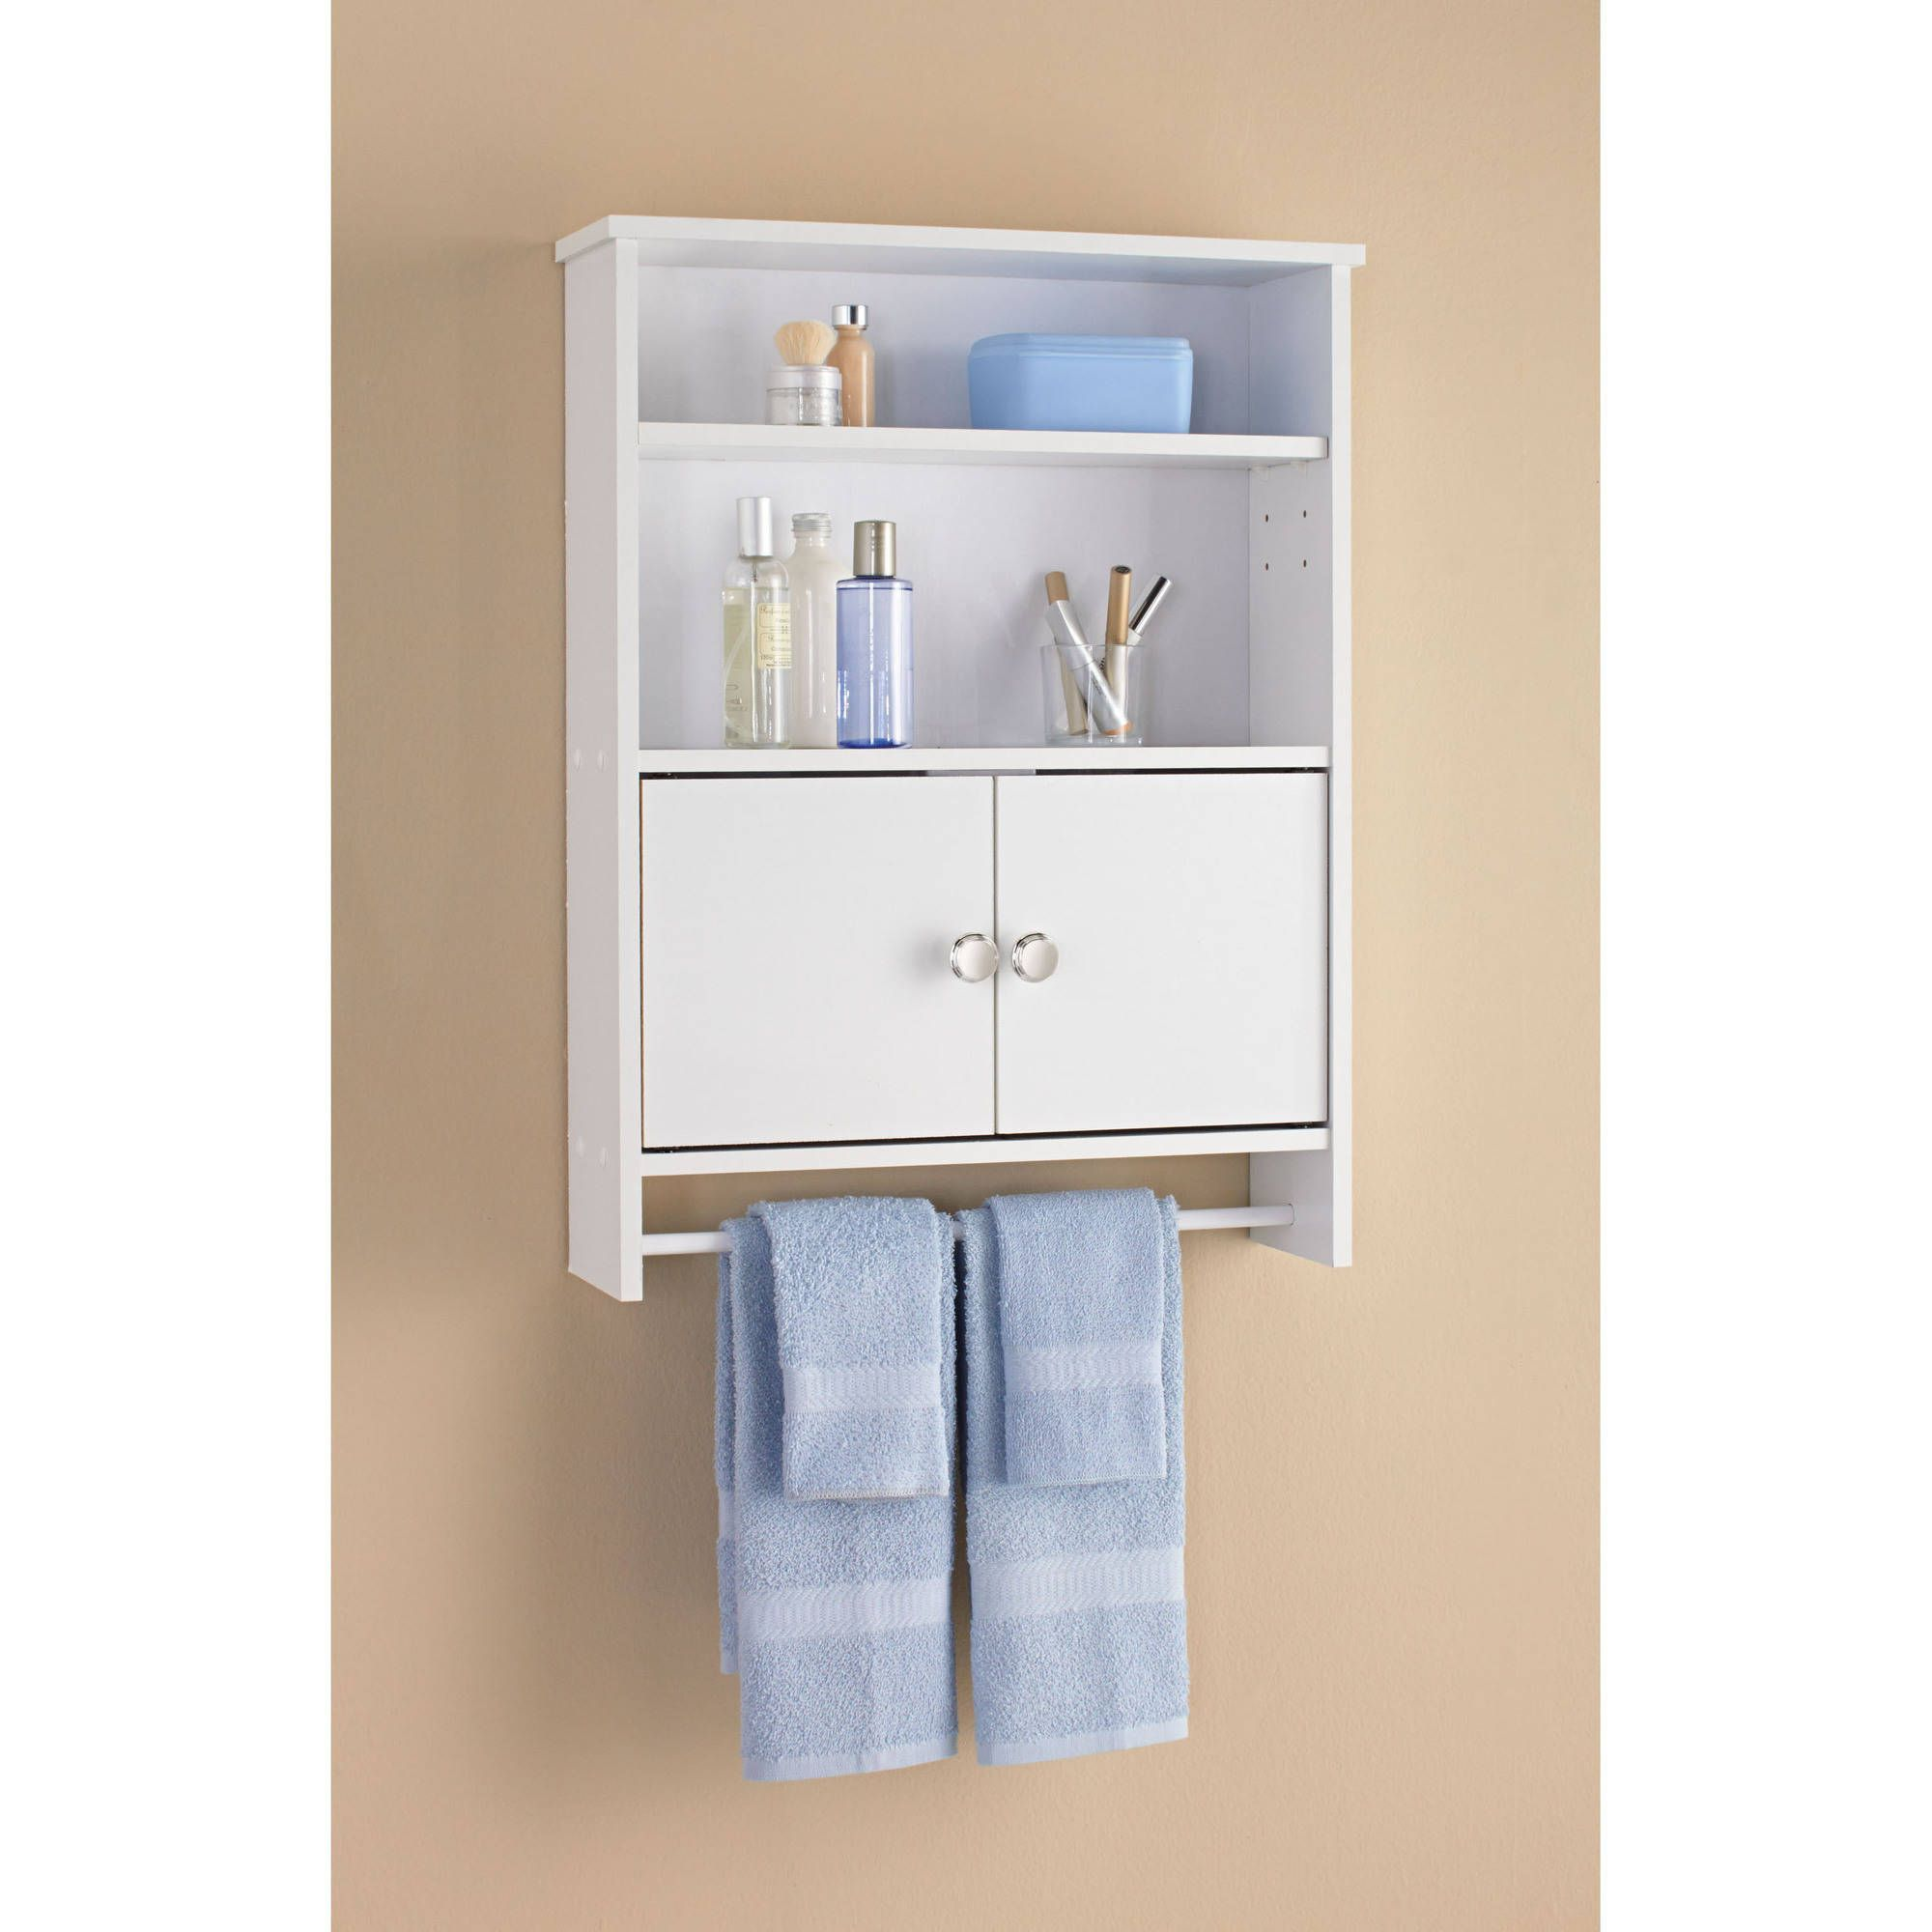 100+ Small Wall Cabinet for Bathroom - Interior Paint Color Ideas ...